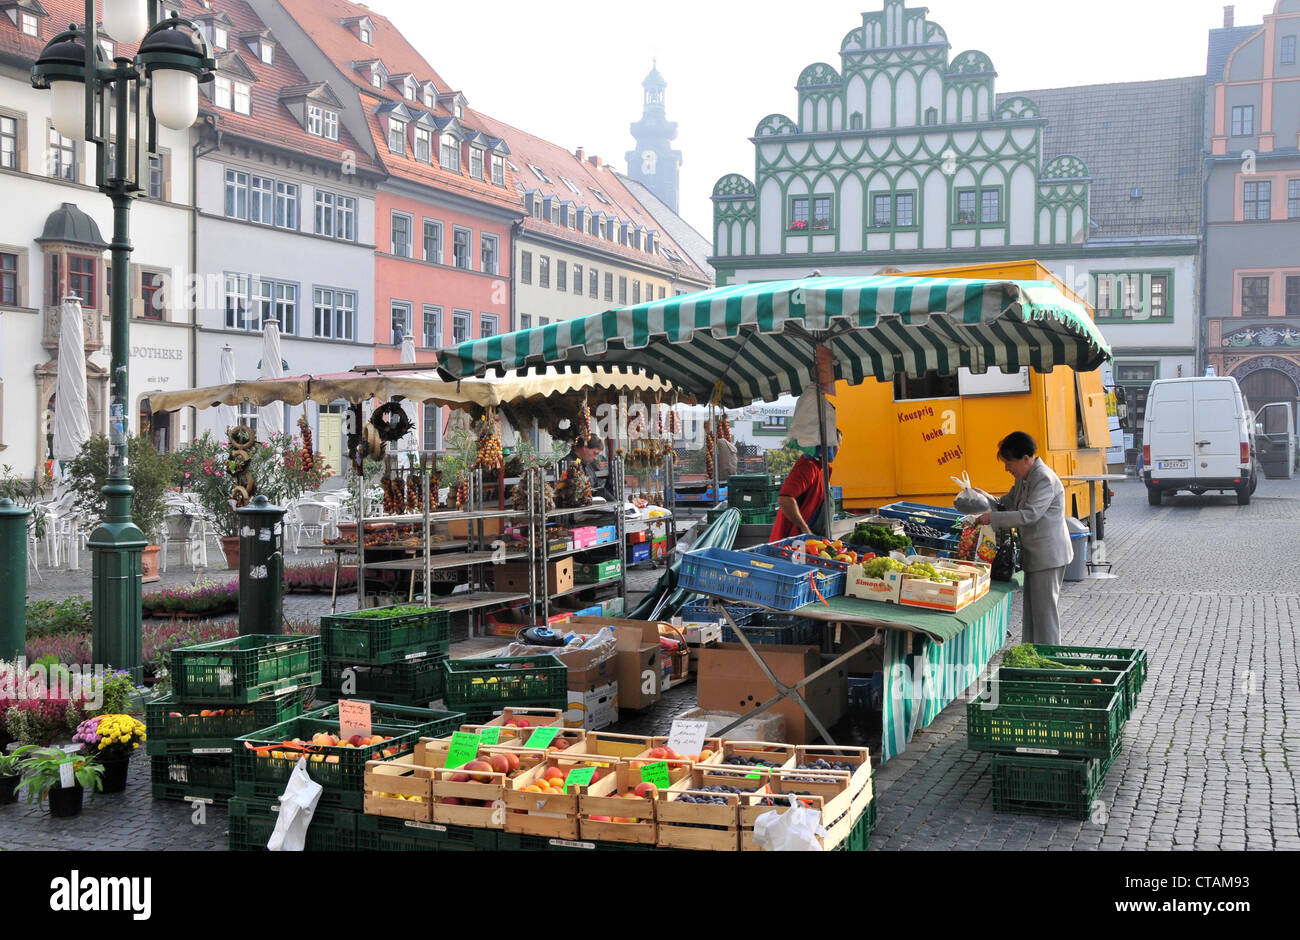 Market on the market square, Weimar, Thuringia, Germany - Stock Image